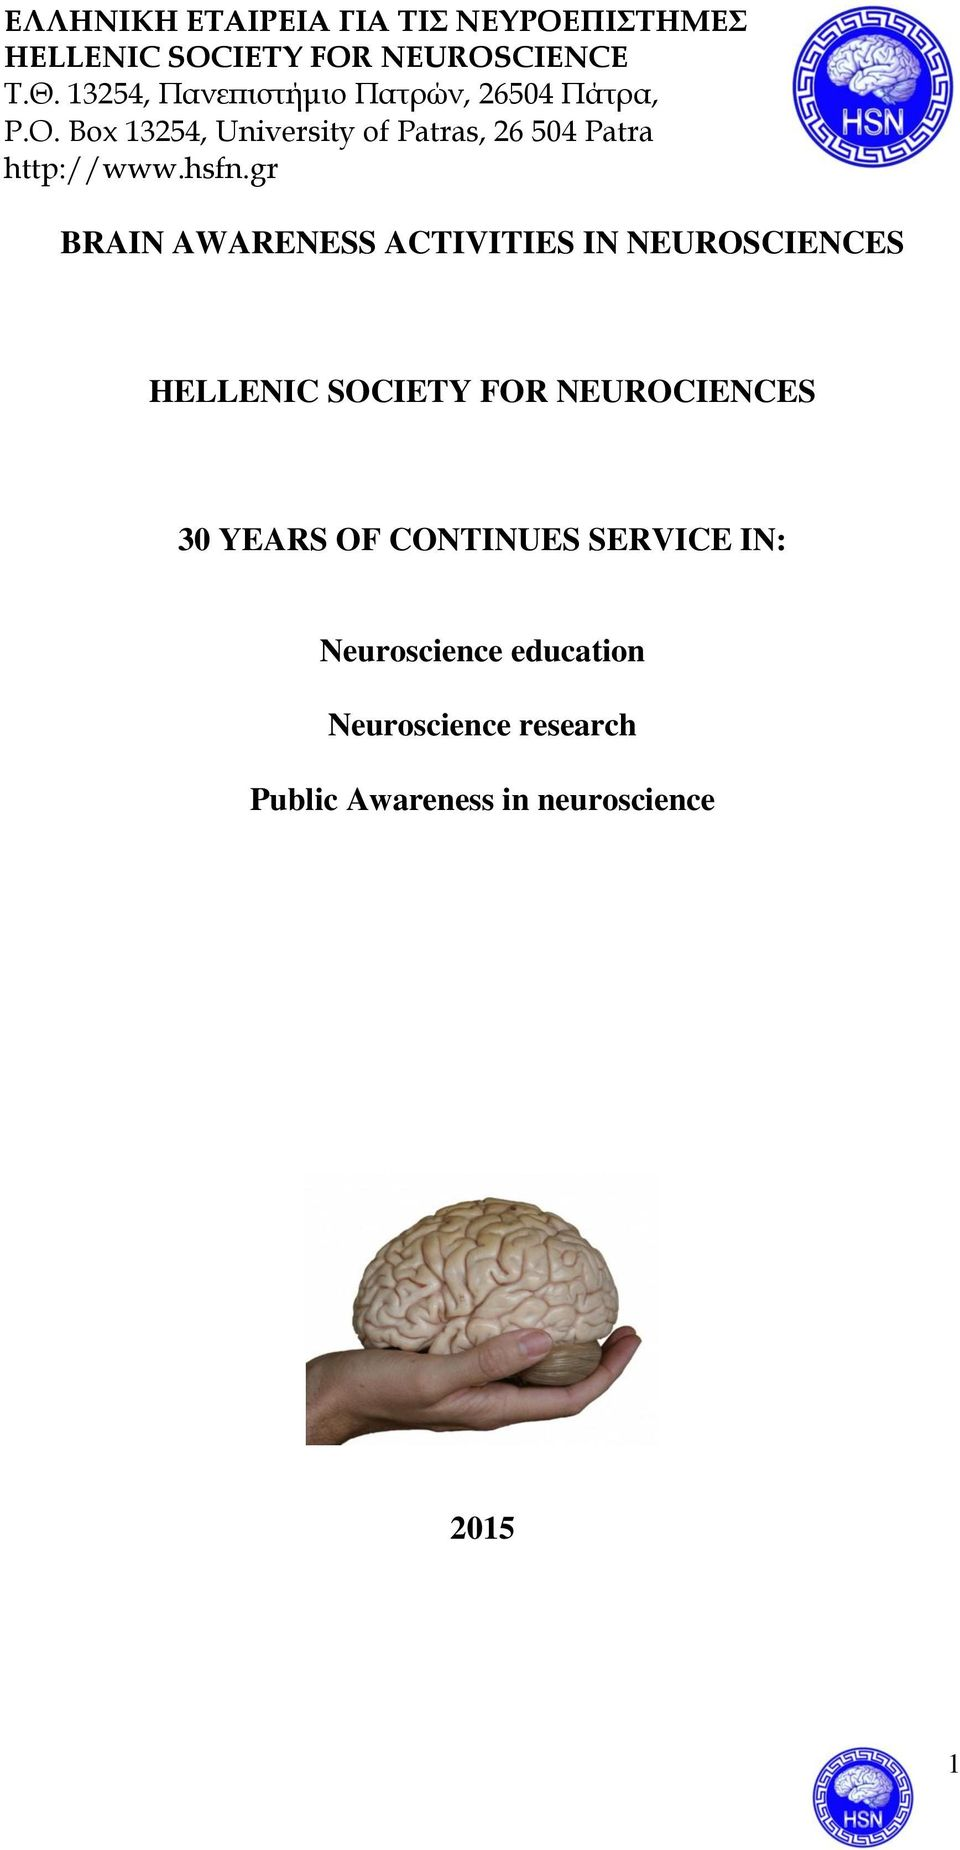 CONTINUES SERVICE IN: Neuroscience education